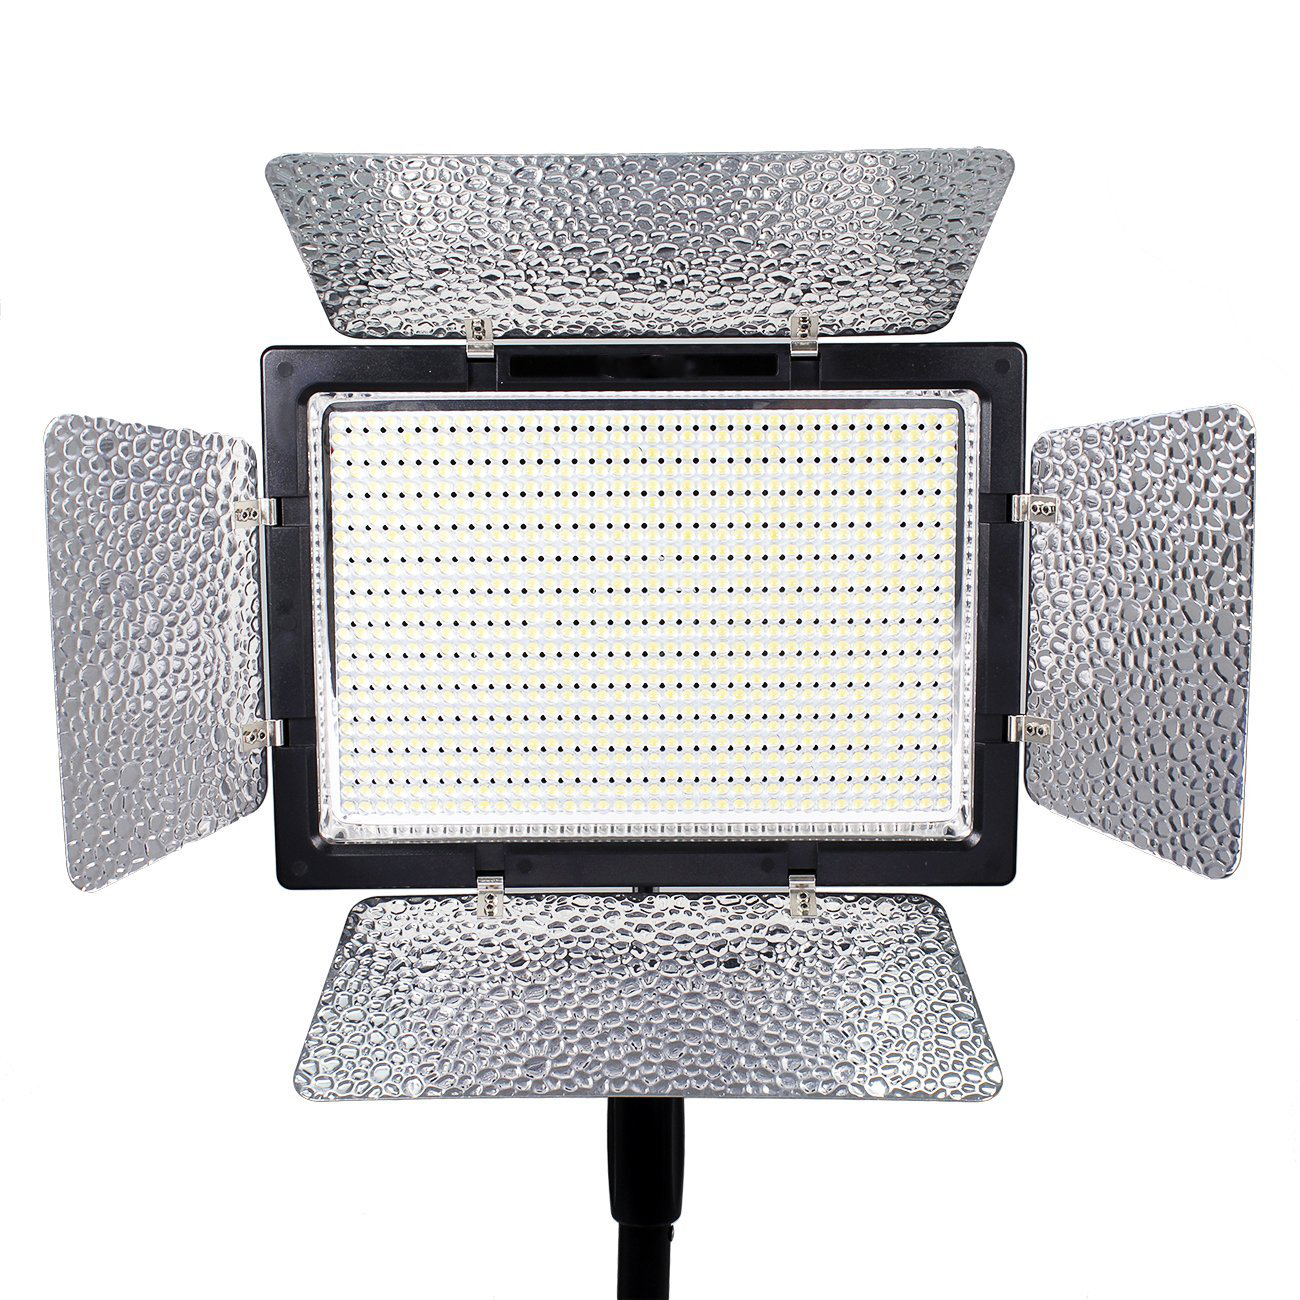 Eclairage Led Photographie Studio Panneau_led_eclairage_video_batterie_camera_900_location